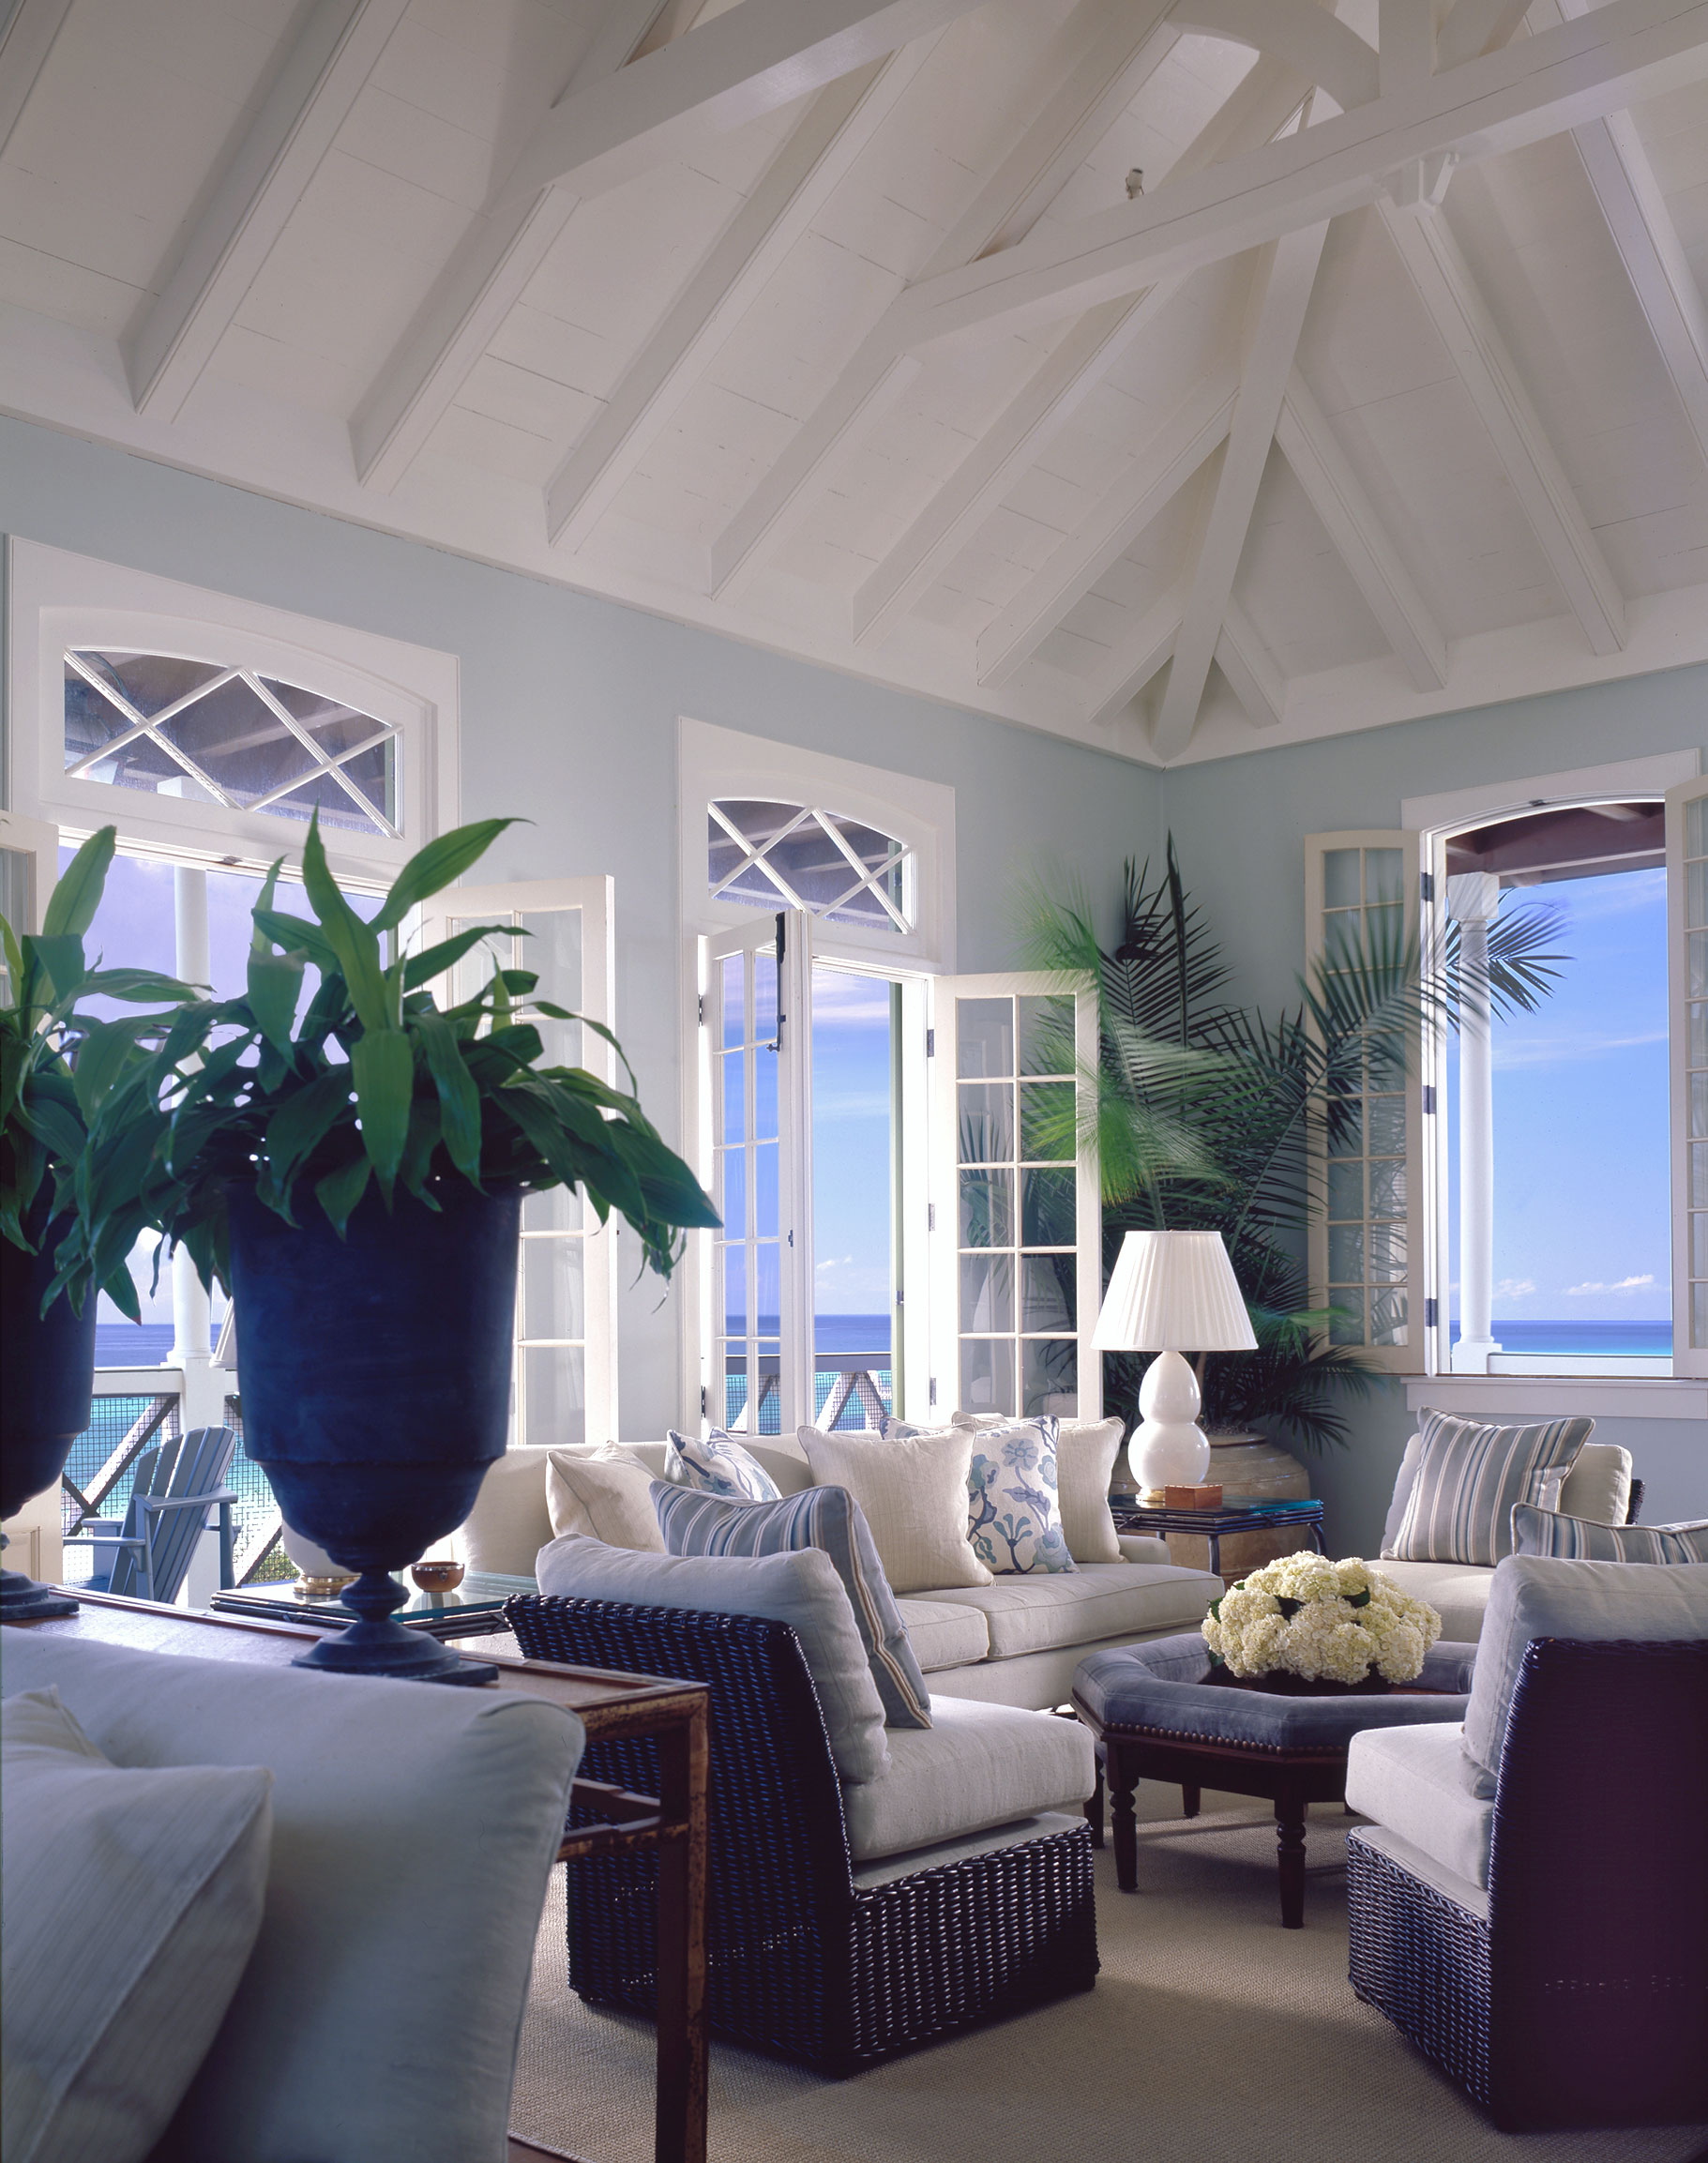 Rosemary-Beach_Living-Room1_web.jpg